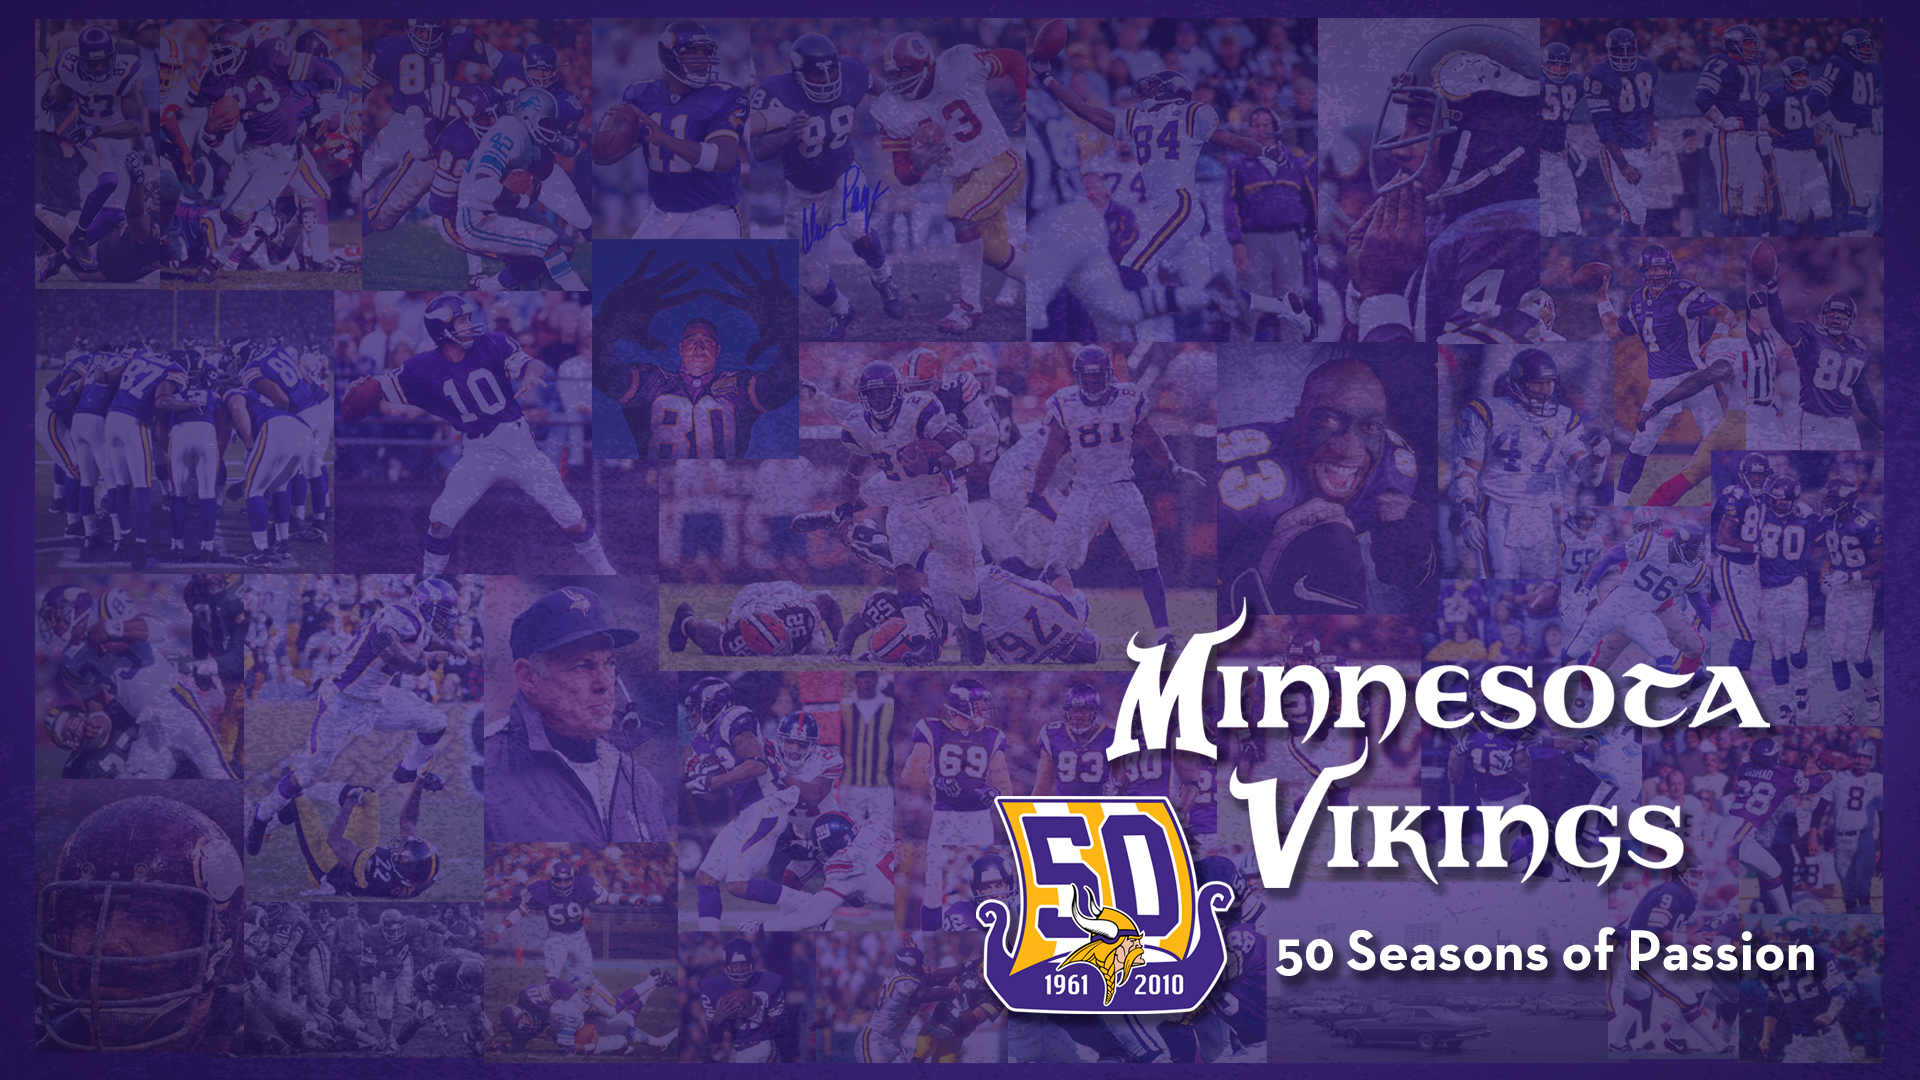 Minnesota Vikings: 50 Seasons of Passion 1.0 Wallpapers